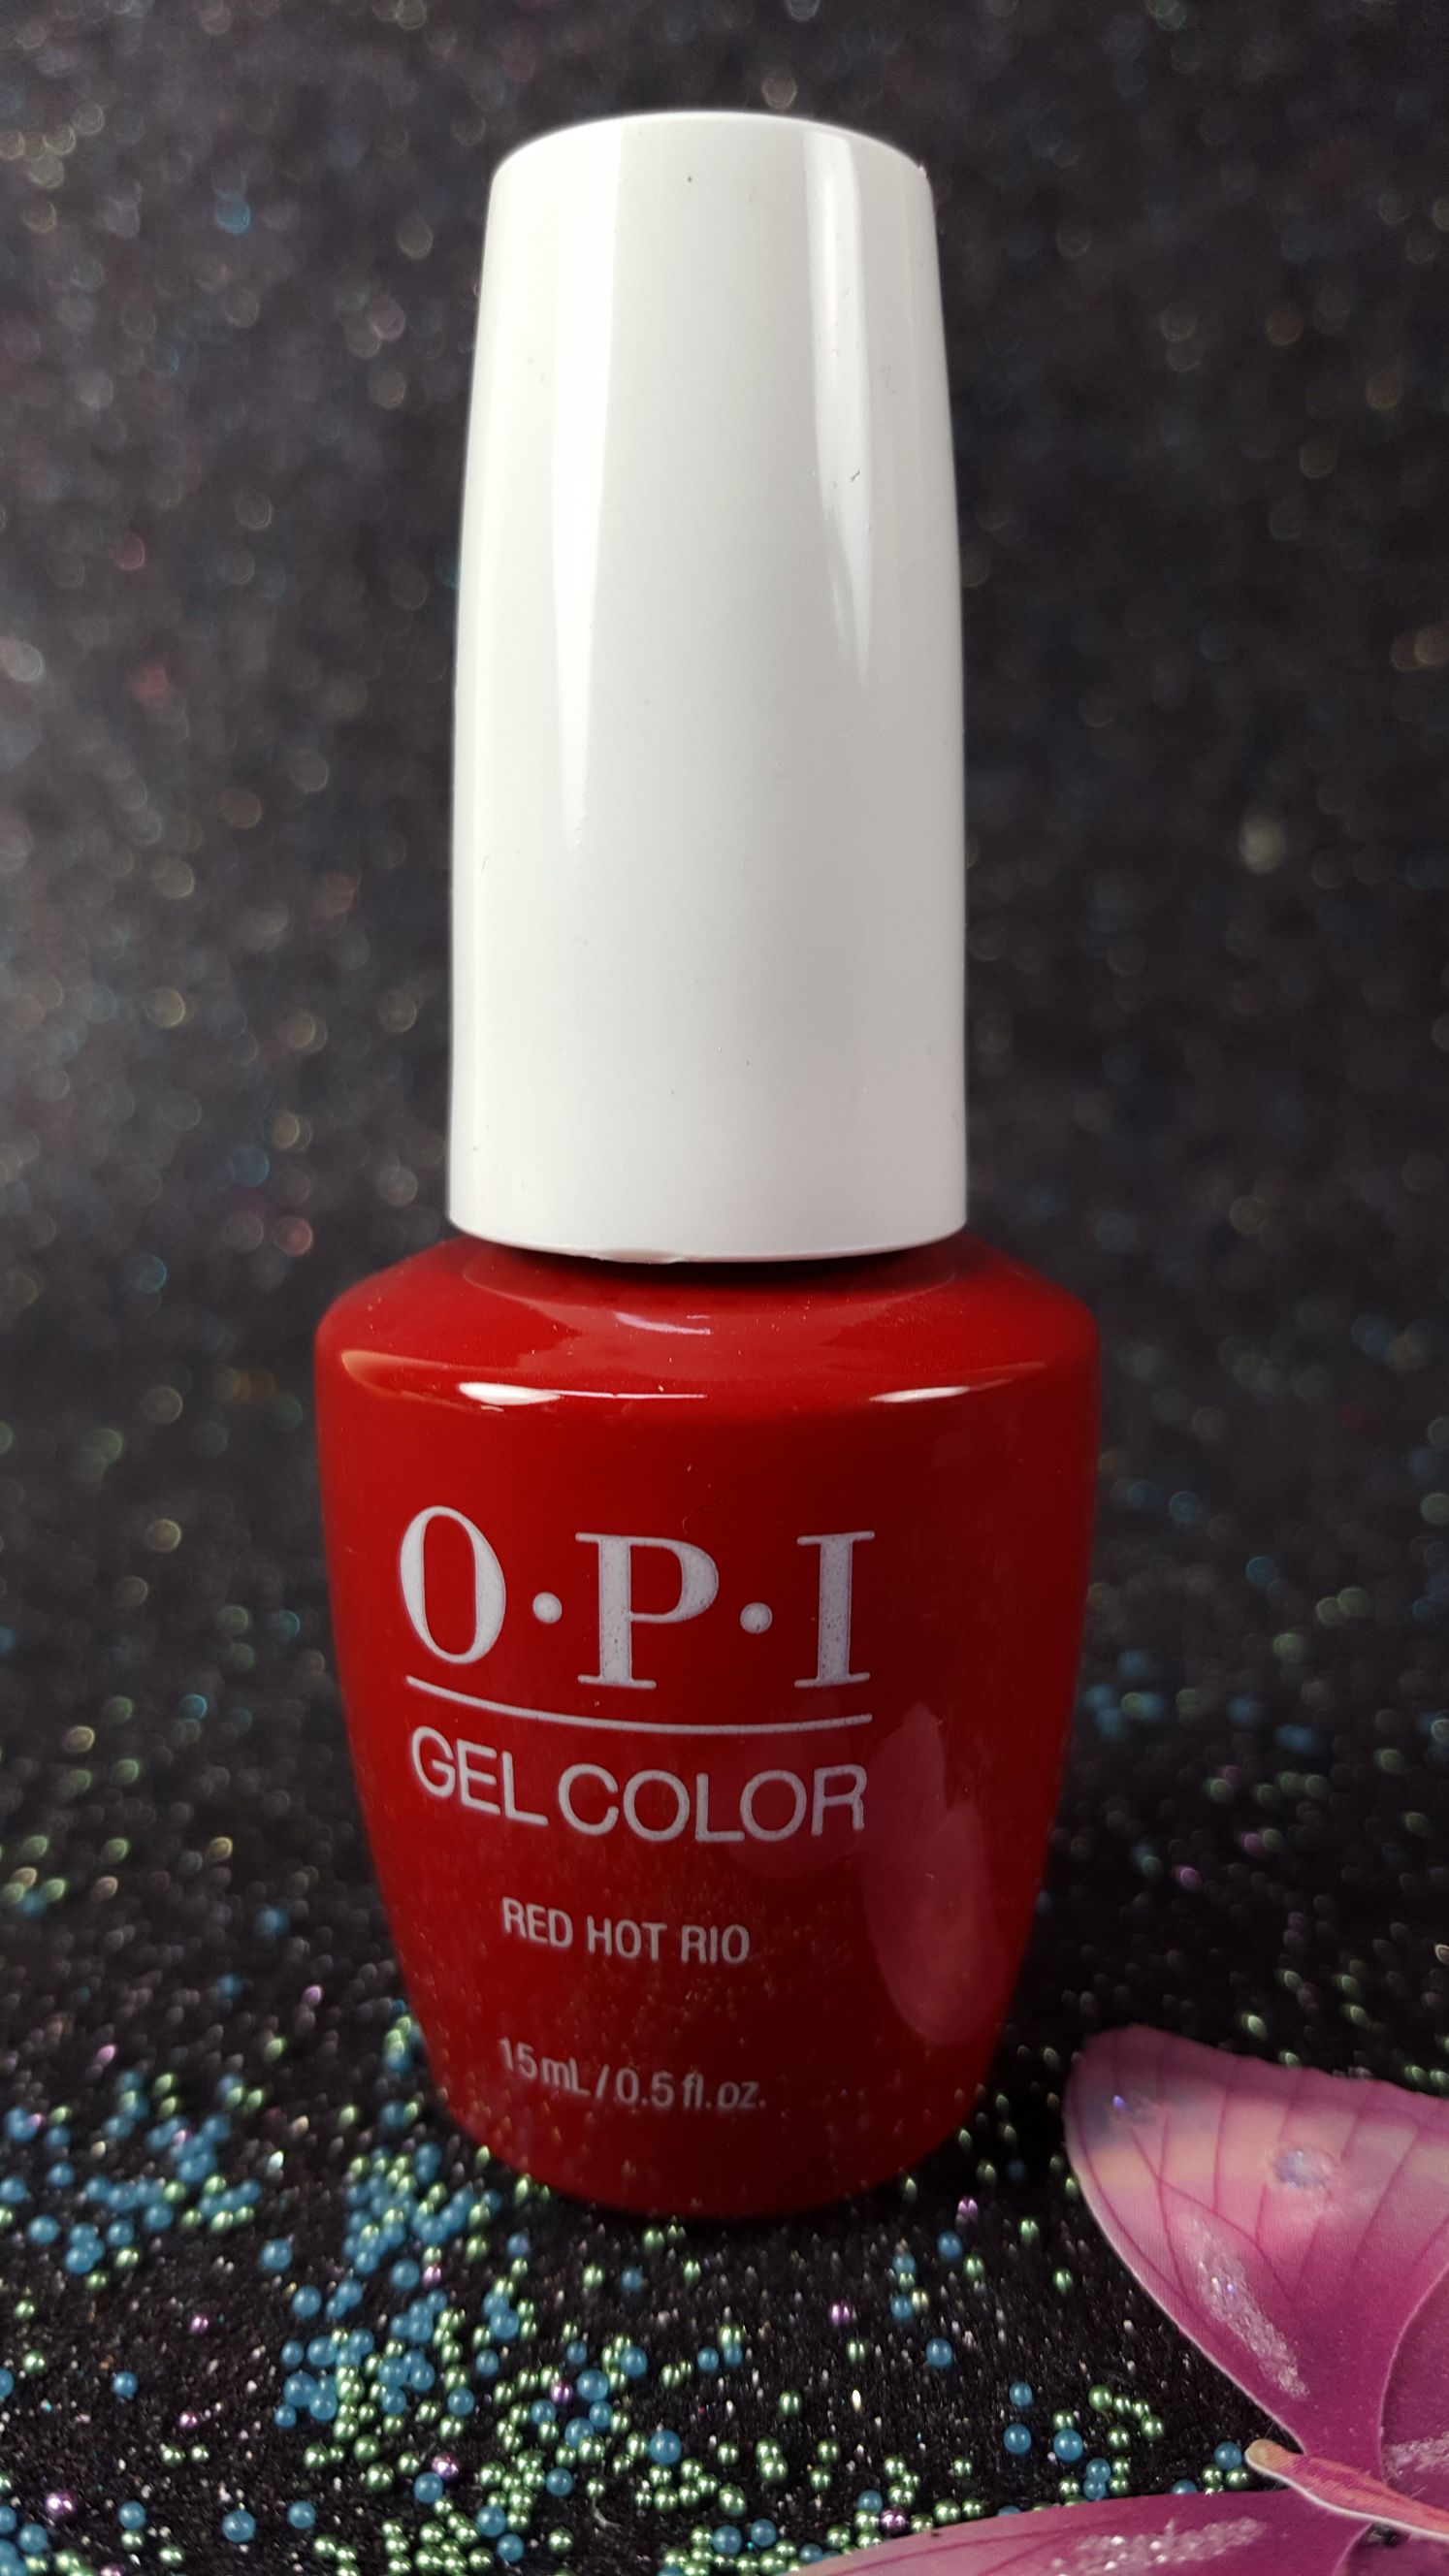 Soak-Off Gel Color by OPI Red Hot Rio NEW Look GCA70 | Gel-Nails.com